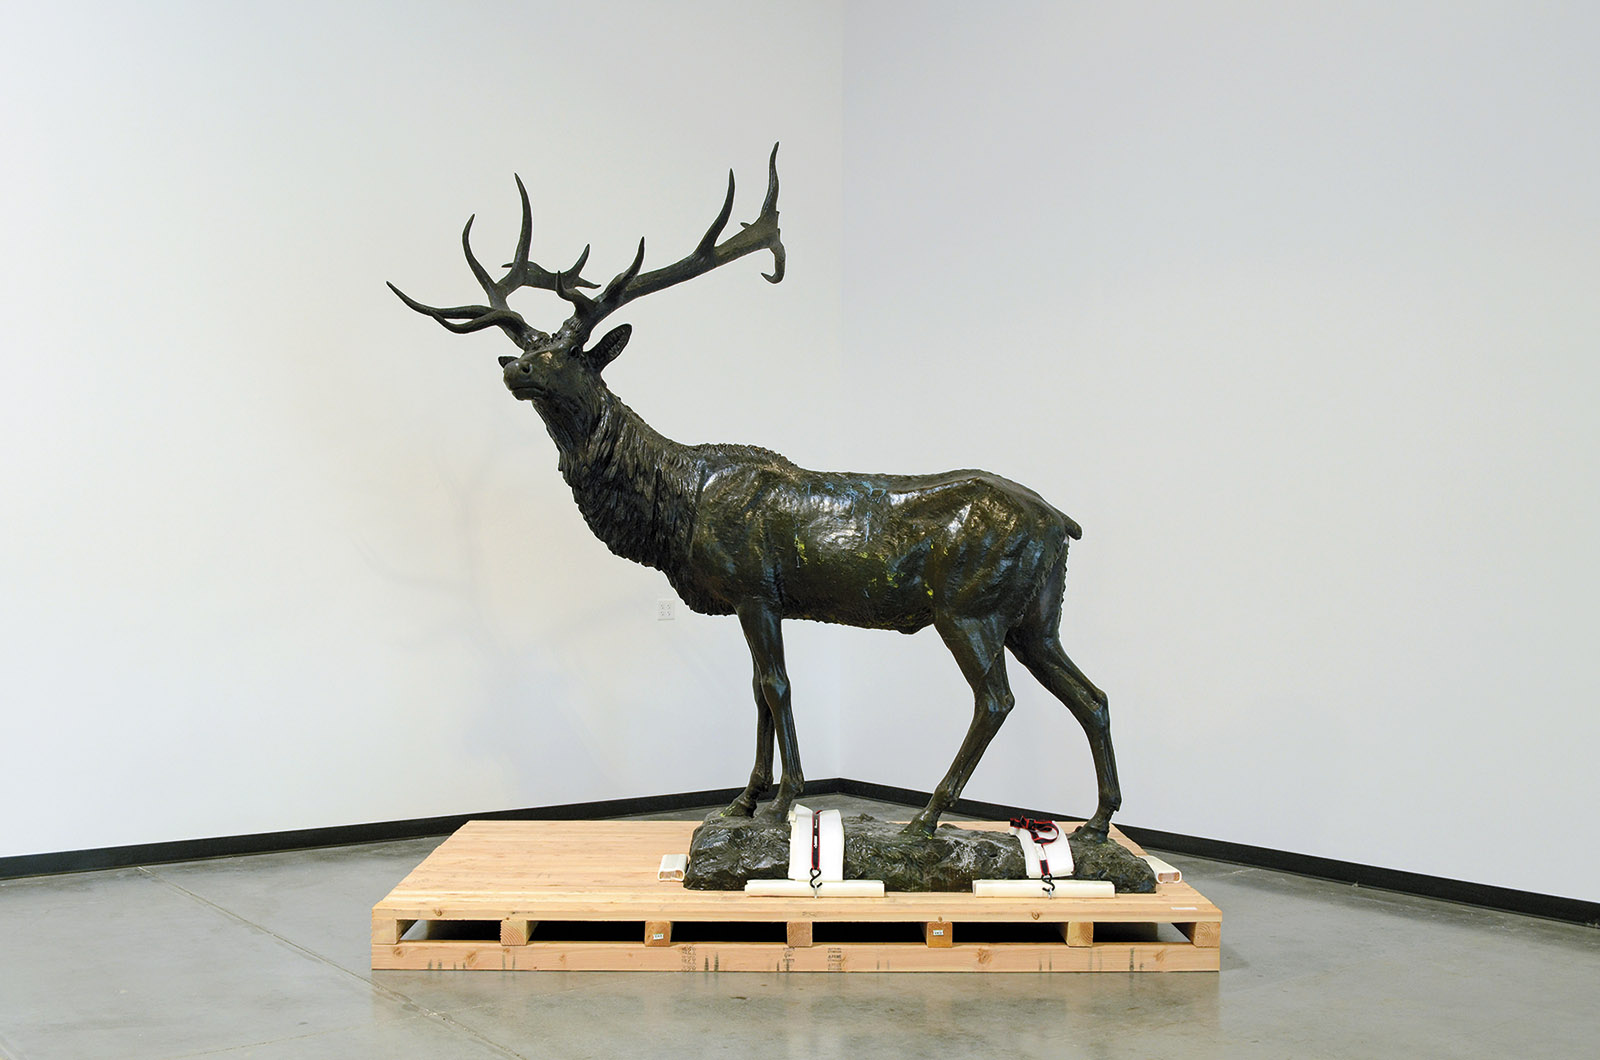 Roland Hinton Perry's Elk in the undisclosed location where it has been stored during the protests against police brutality in Portland, Oregon